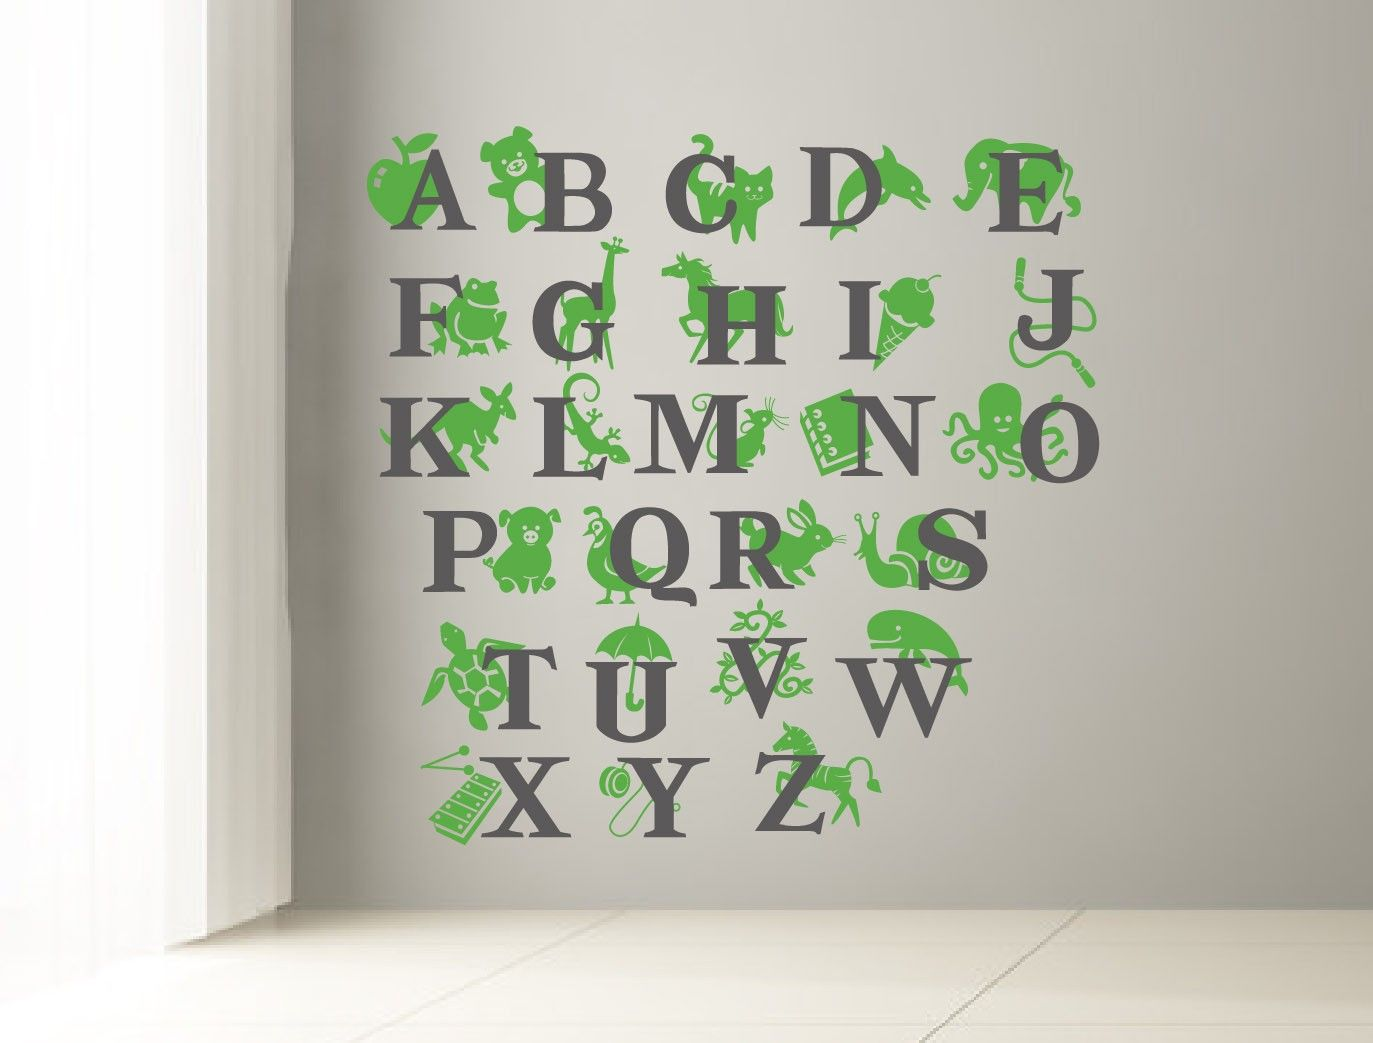 Abc wall decal alphabet decal for kids room letters and animals abc wall decal alphabet decal for kids room letters and animals decal sticker for amipublicfo Image collections